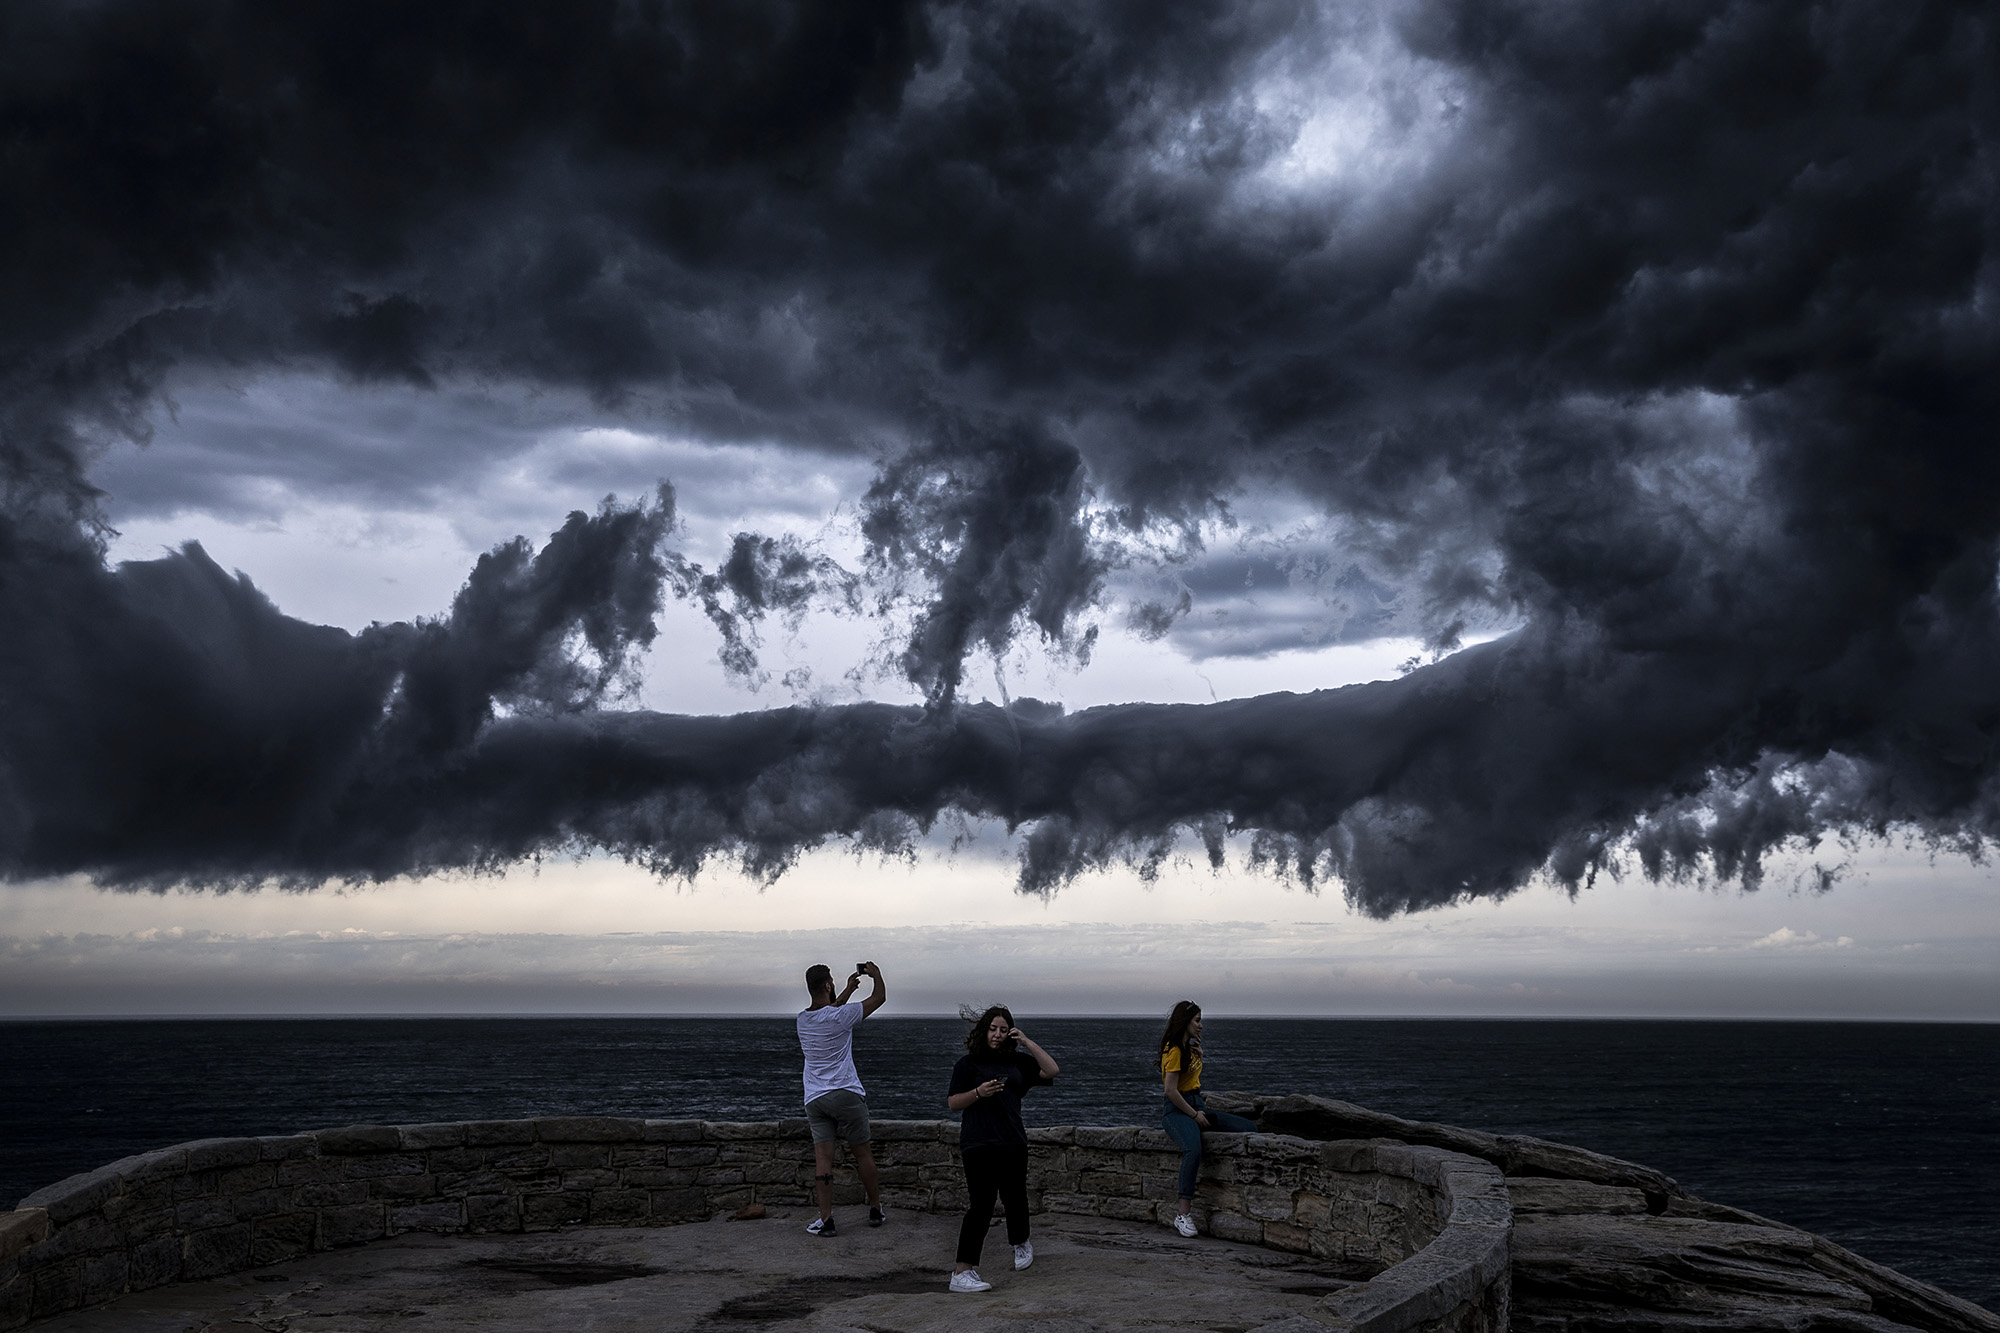 SYDNEY, AUSTRALIA - NOVEMBER 13: People watch on from Marks Park as a thunderstorm gathers off Bondi Beach on November 13, 2020 in Sydney, Australia. The Bureau of Meteorology issued a number of severe weather alerts for the region today, with a high risk of thunderstorms and hail. (Photo by Brook Mitchell/Getty Images)